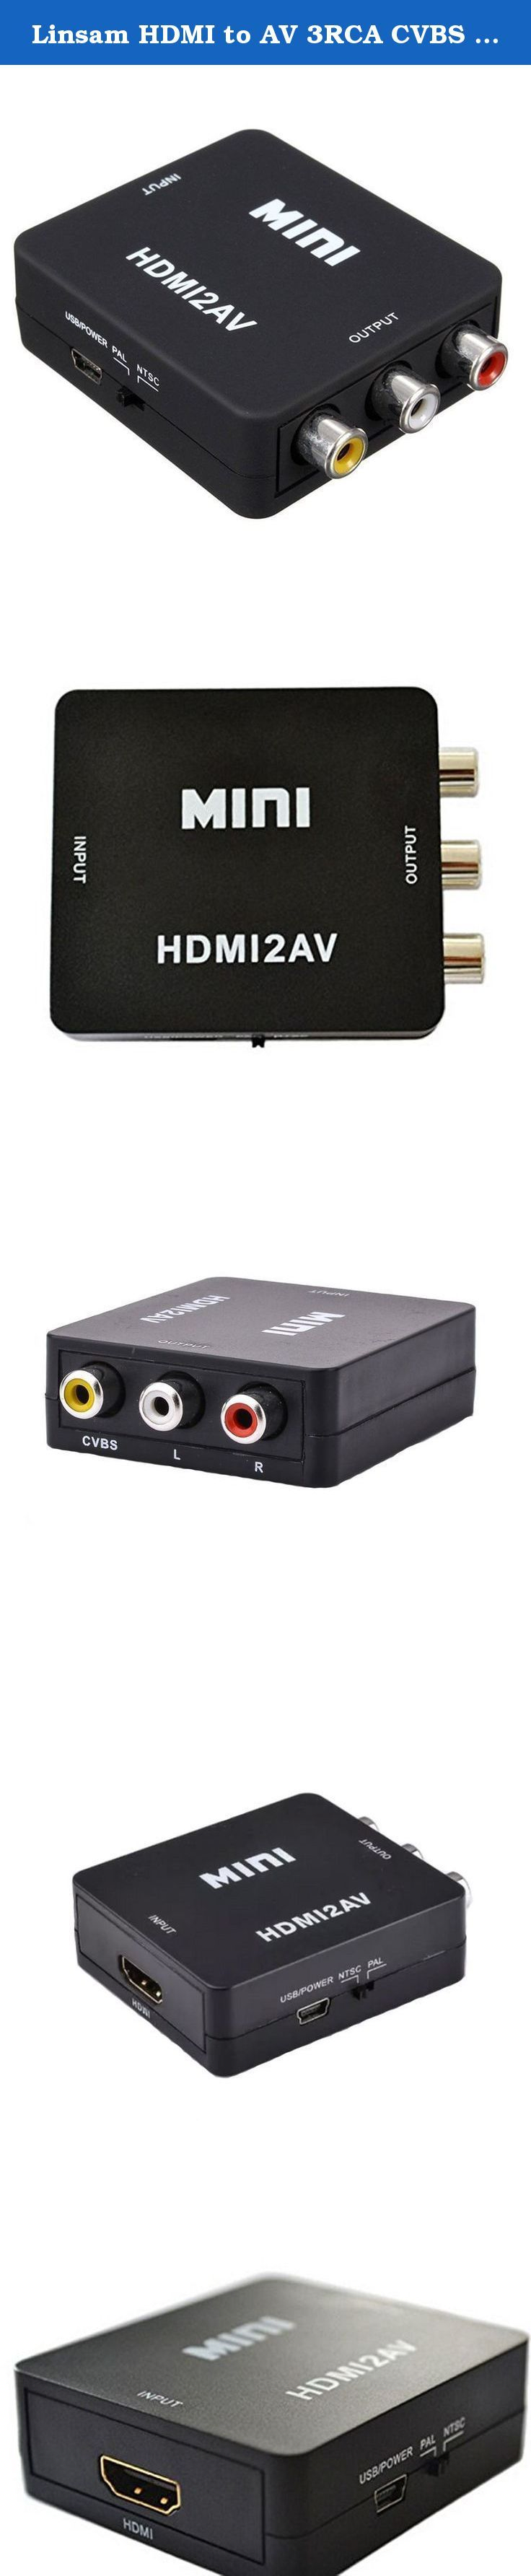 Linsam HDMI to AV 3RCA CVBS Composite Video Audio Converter Adapter 720P/1080P Supporting PAL/NTSC with USB Charge Cable for PC Laptop Xbox PS3 TV STB VHS VCR Camera /Blu-ray DVD Black (HDMI to AV). Description: This HDMI to AV adapter can convert HDMI video/audio signal to AV(CVBS)composite video and L/R stereo audio signal, supports DVI system sideline signals. Features: 1.No drivers,portable,flexible,plug and play. 2.Output the audio synchronize with video. 3.High bandwidth capability...